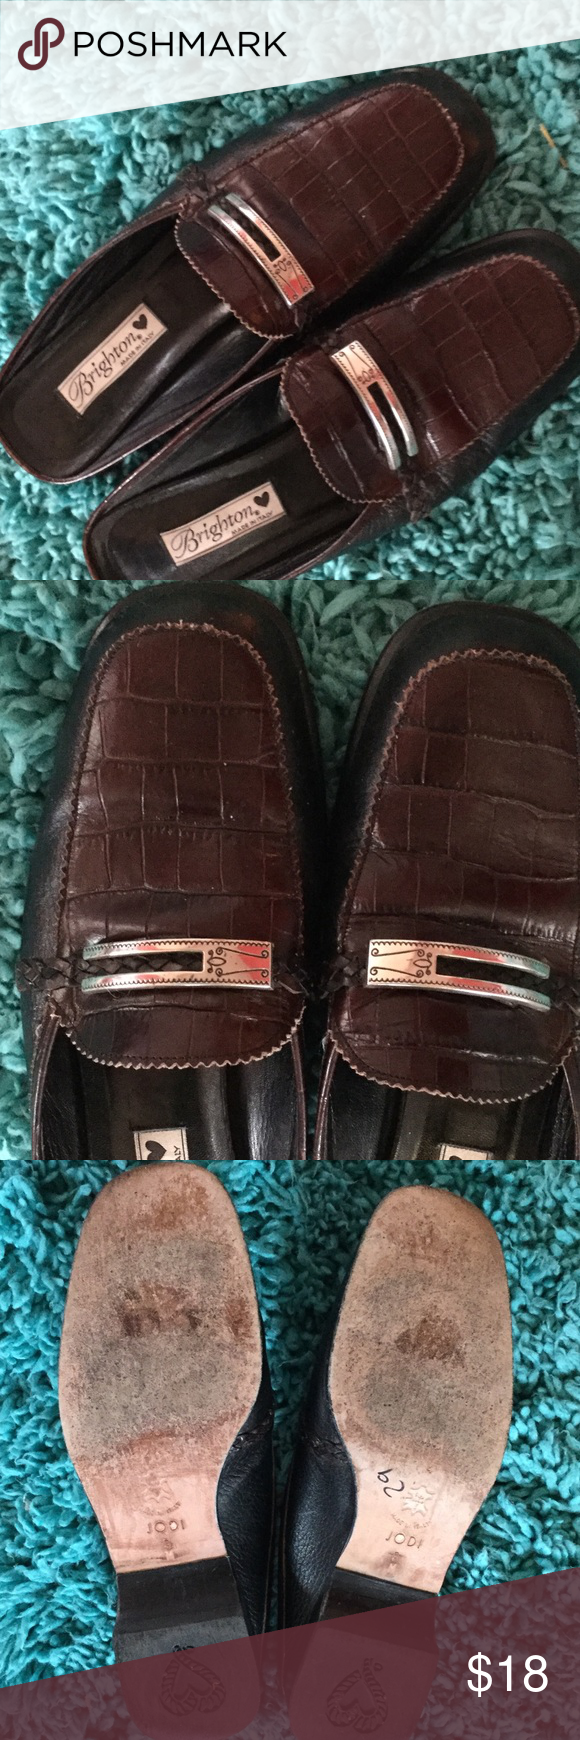 Brighton Jodi slides sz 9 shoes Brown croc leather upper with silver adorning   Great shape. Wear to soles moderate Brighton Shoes Mules & Clogs